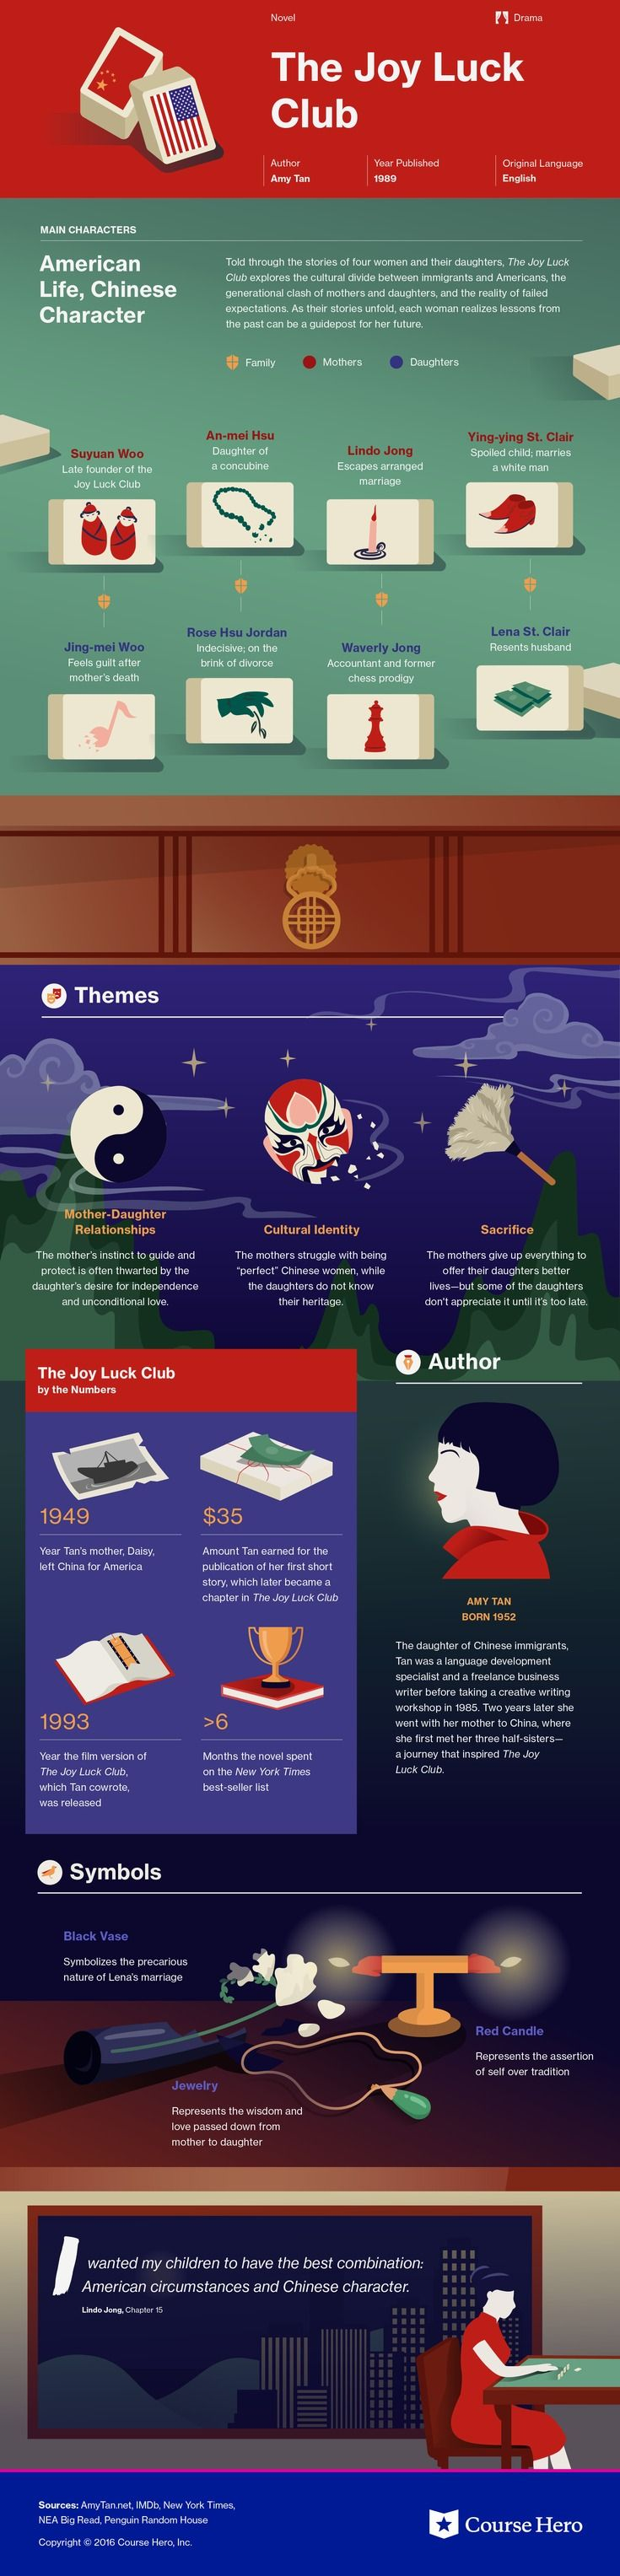 summary of joy luck club amy tan s the valley of amazement book  best ideas about the joy luck club novels this coursehero infographic on the joy luck club